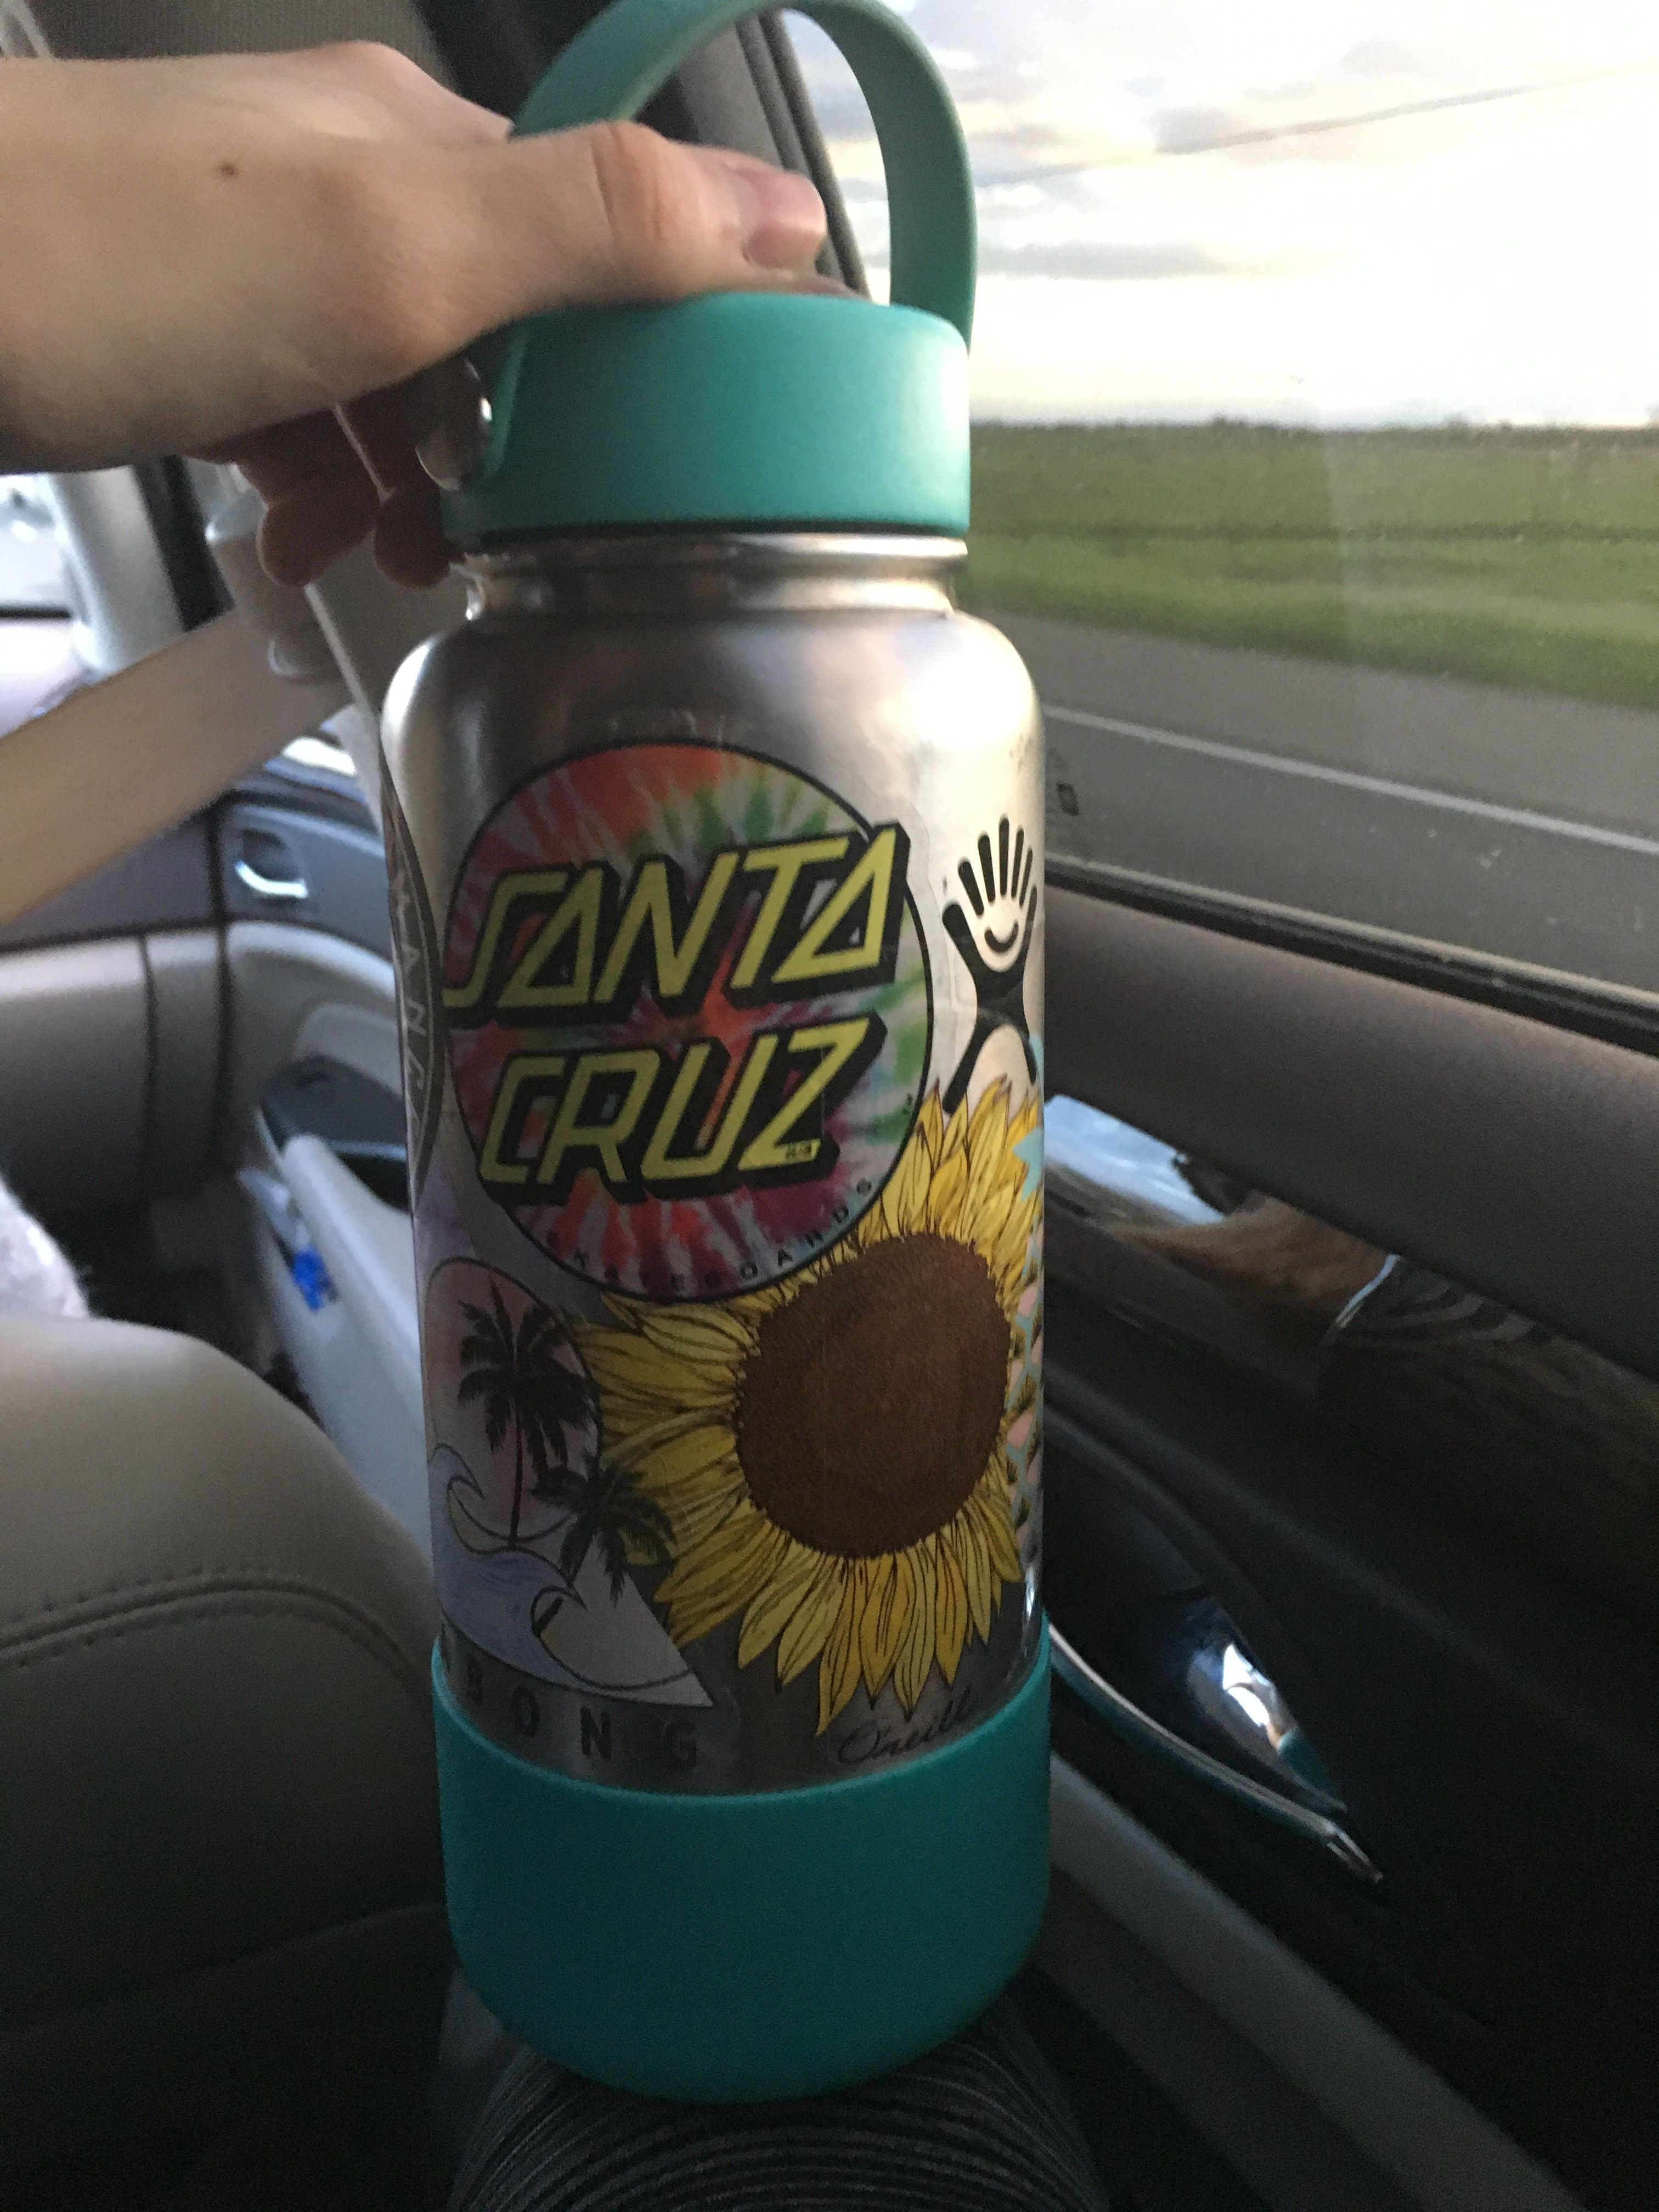 Finally put some stickers on my hydroflask